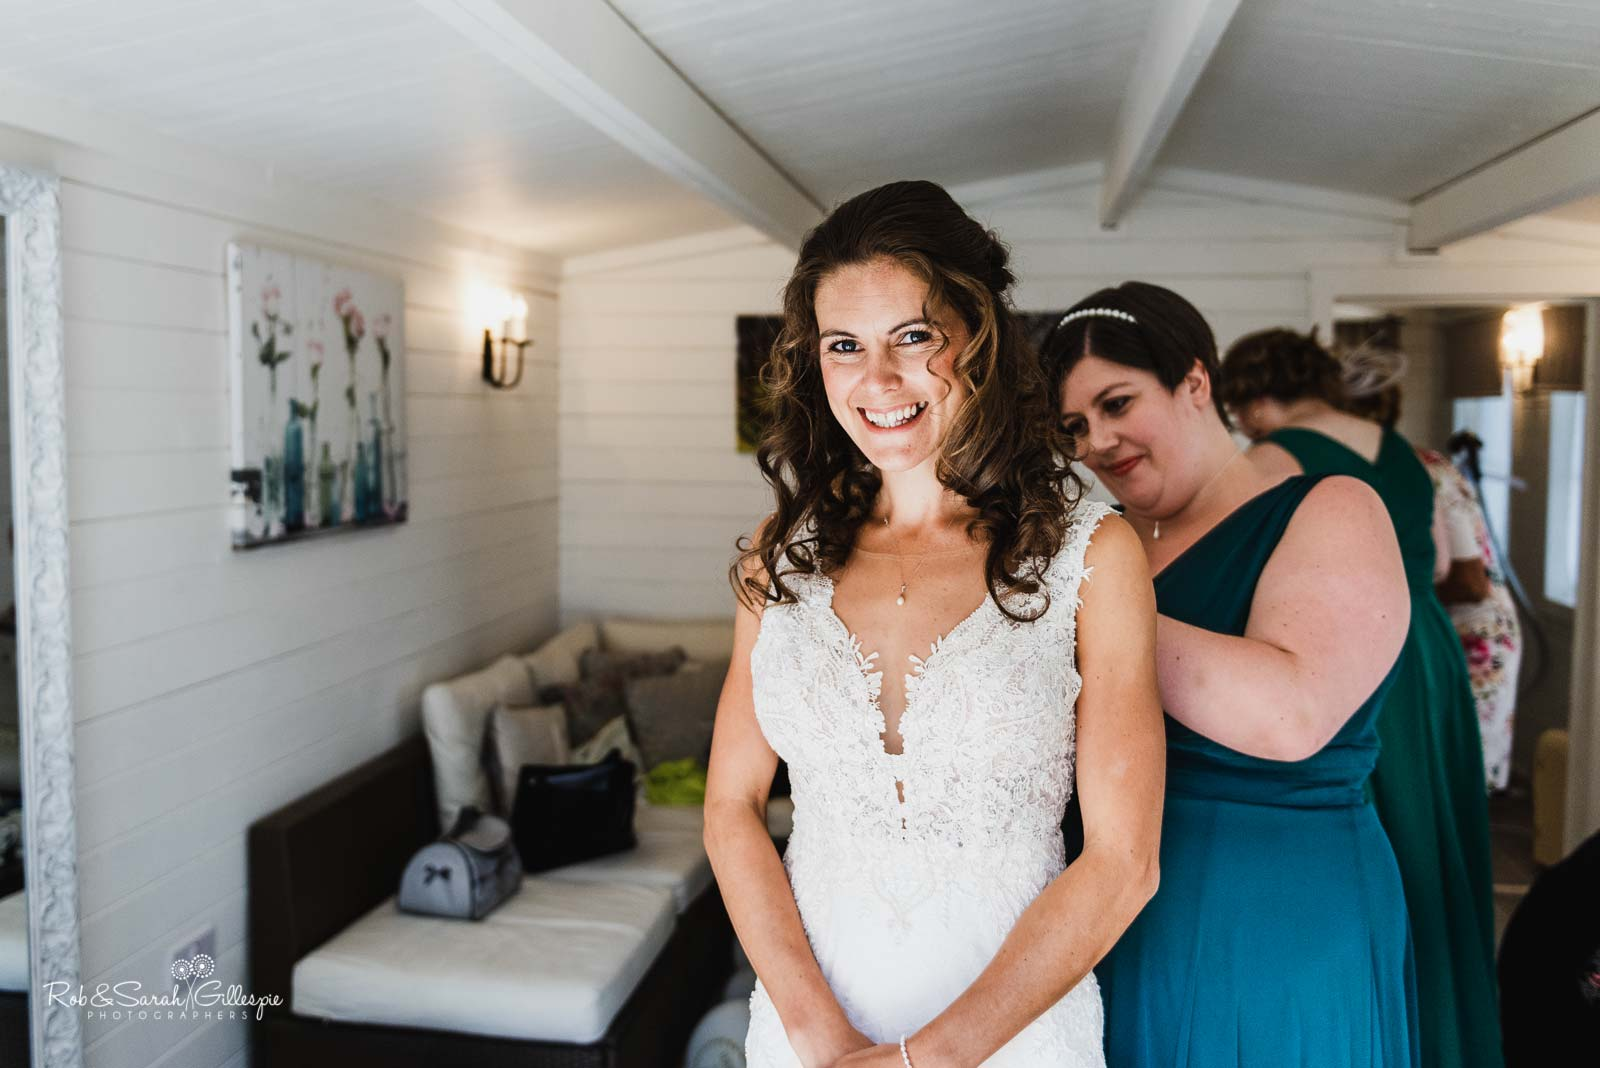 Bride getting ready for wedding at Wethele Manor